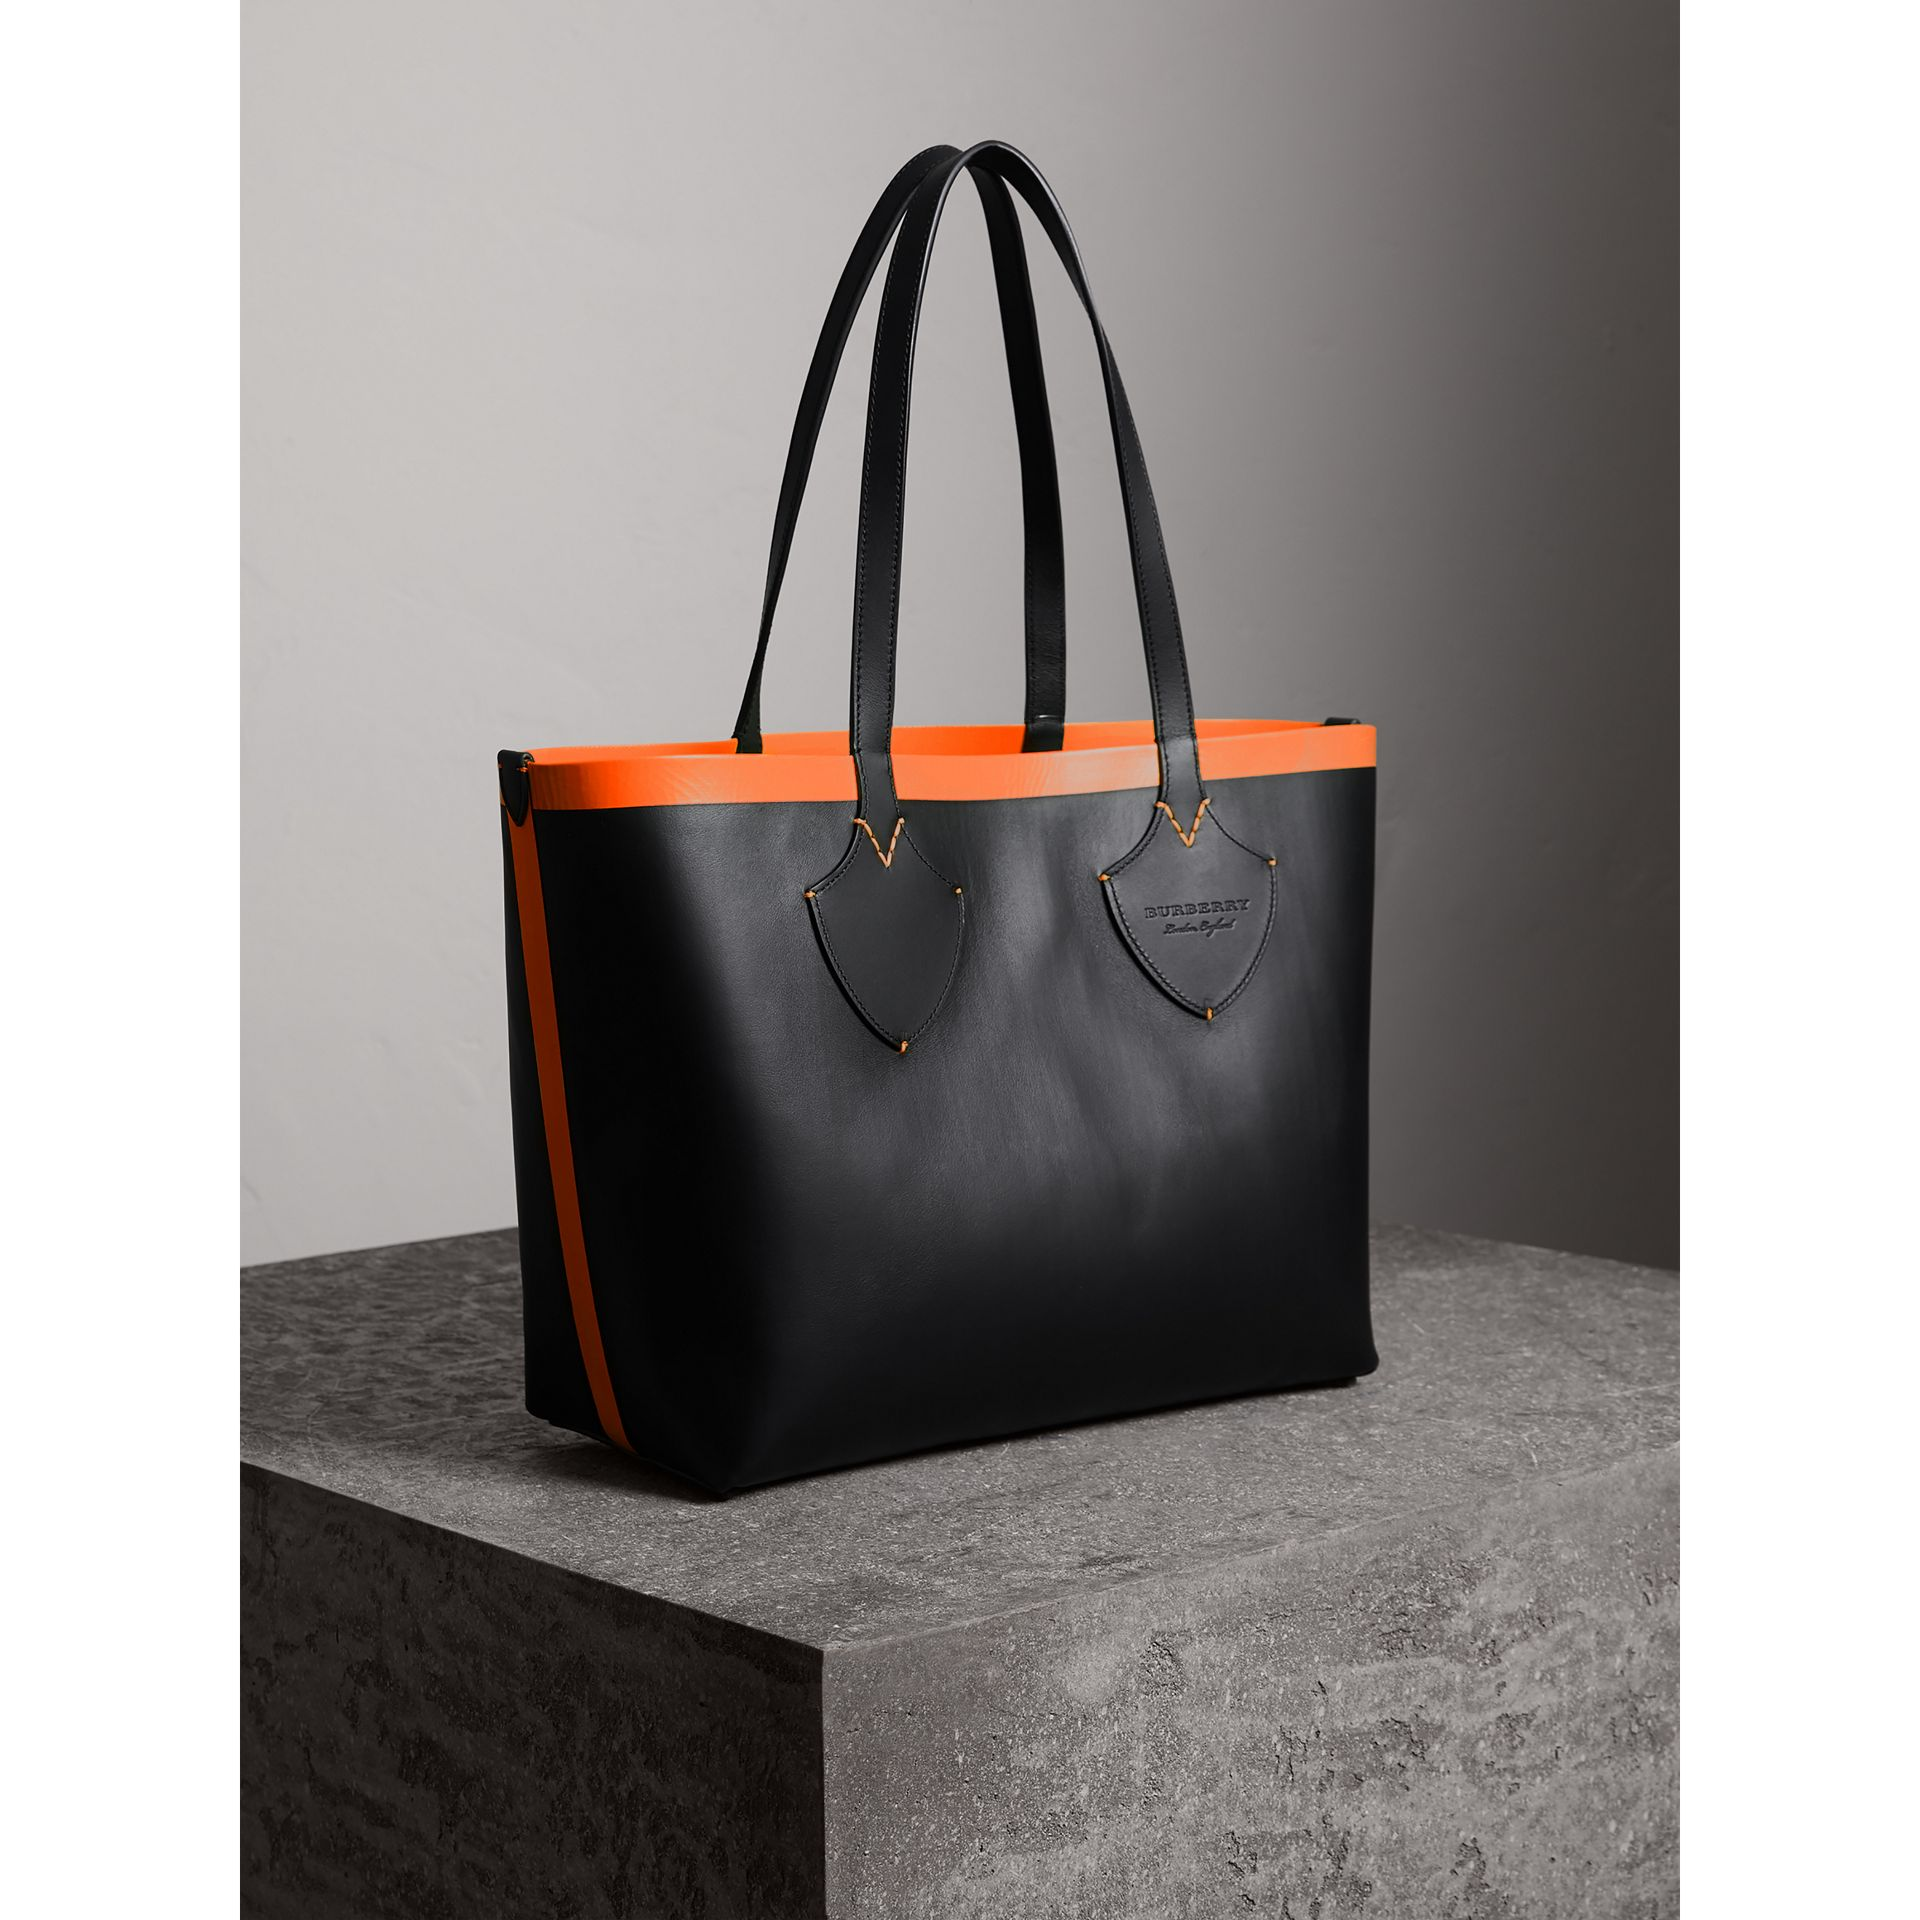 Sac tote The Giant moyen réversible en toile et en cuir (Noir/orange Néon) | Burberry - photo de la galerie 3